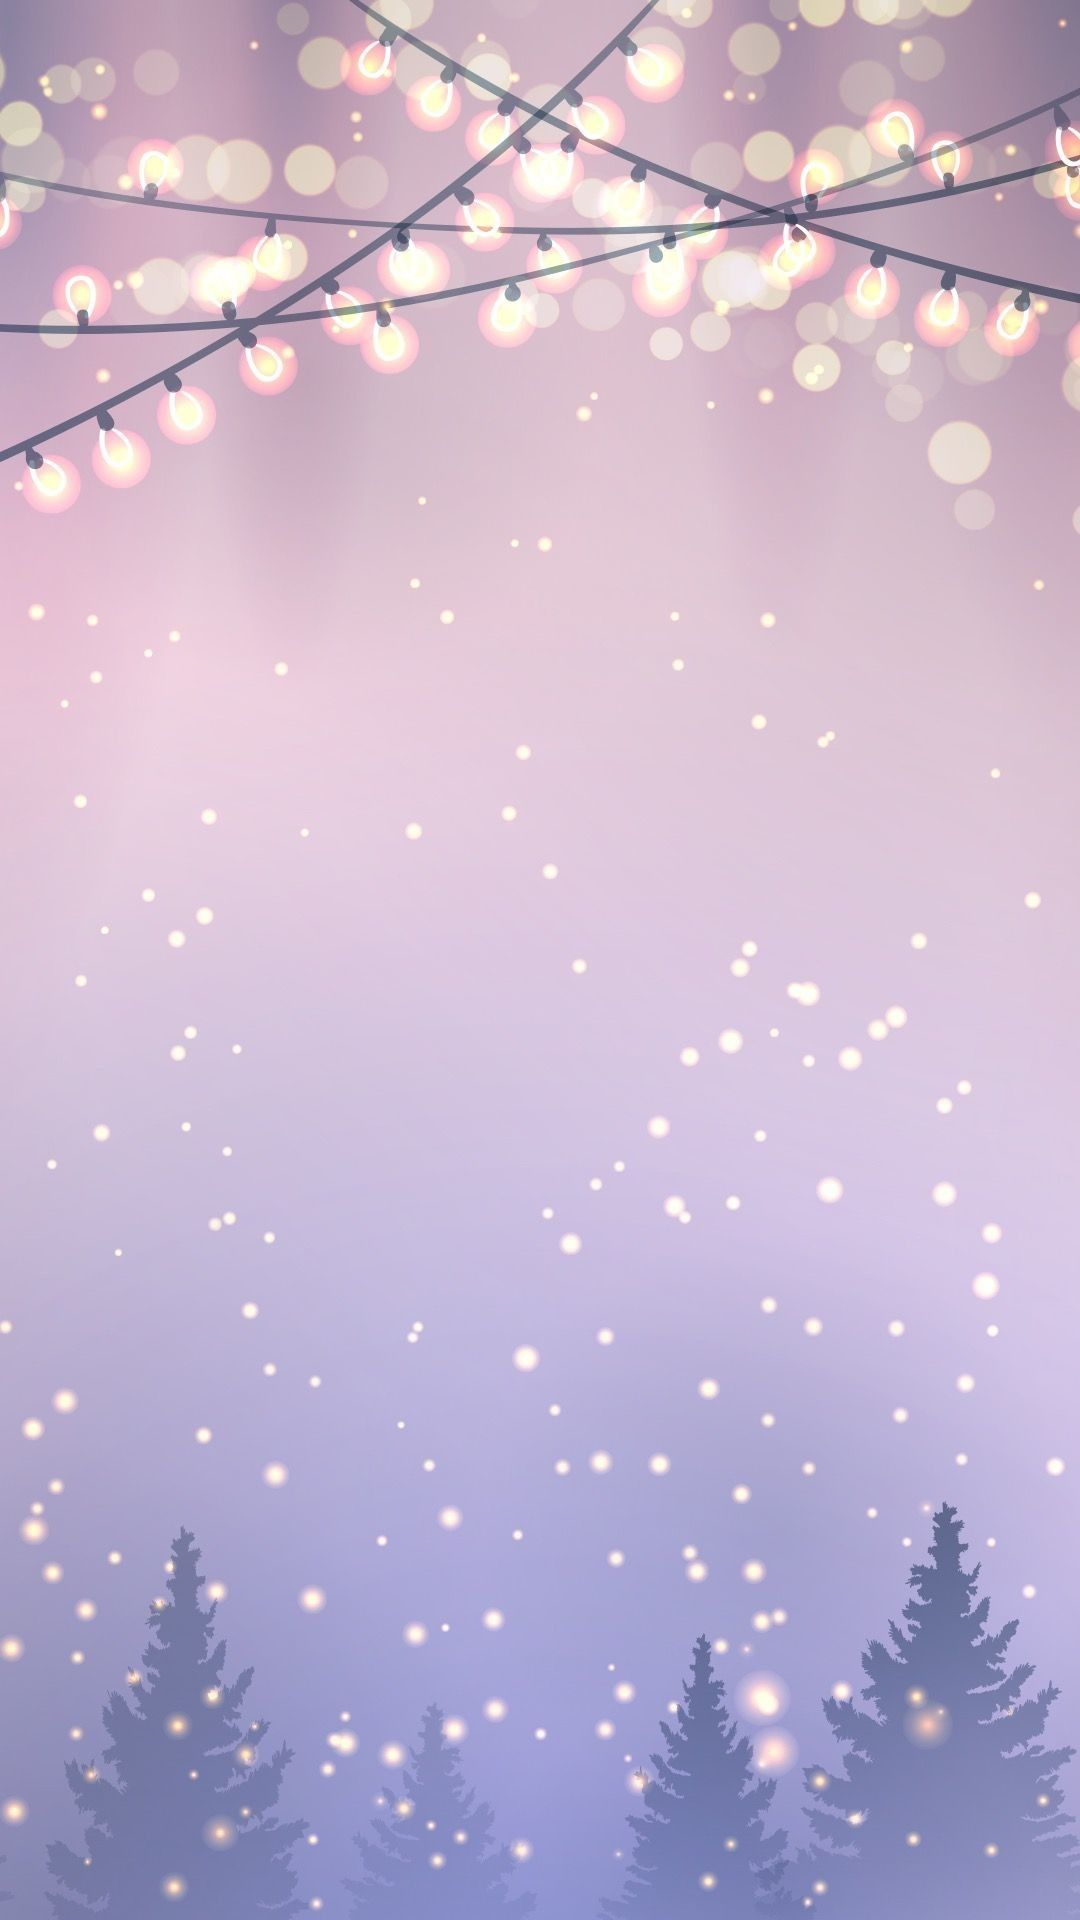 Cute Christmas Phone Wallpapers - Top